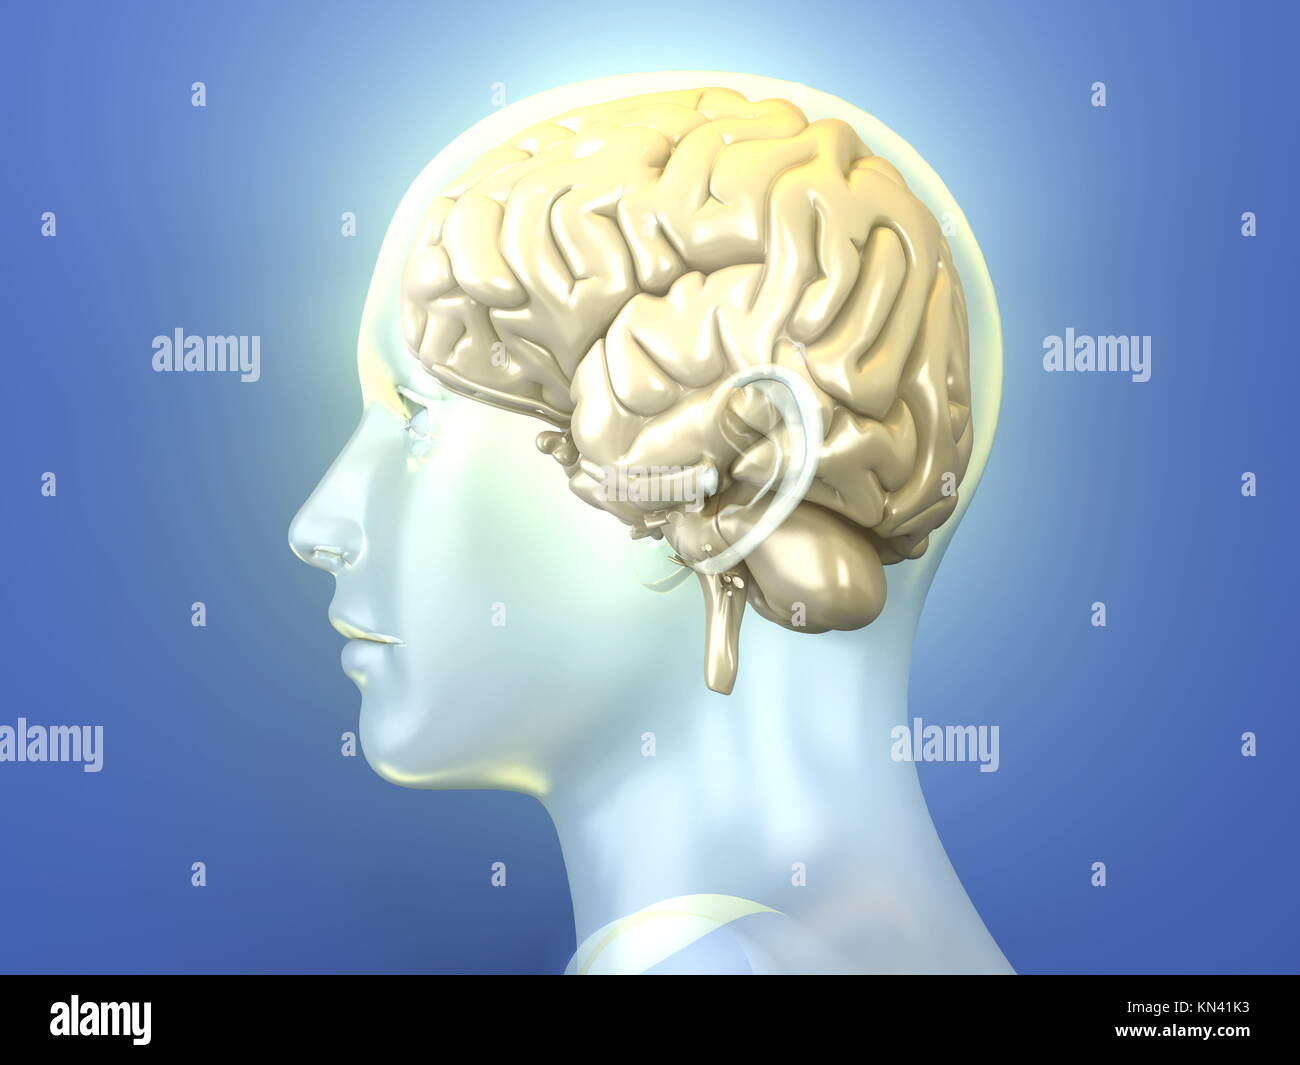 The Human Brain. 3D rendered anatomical illustration. - Stock Image